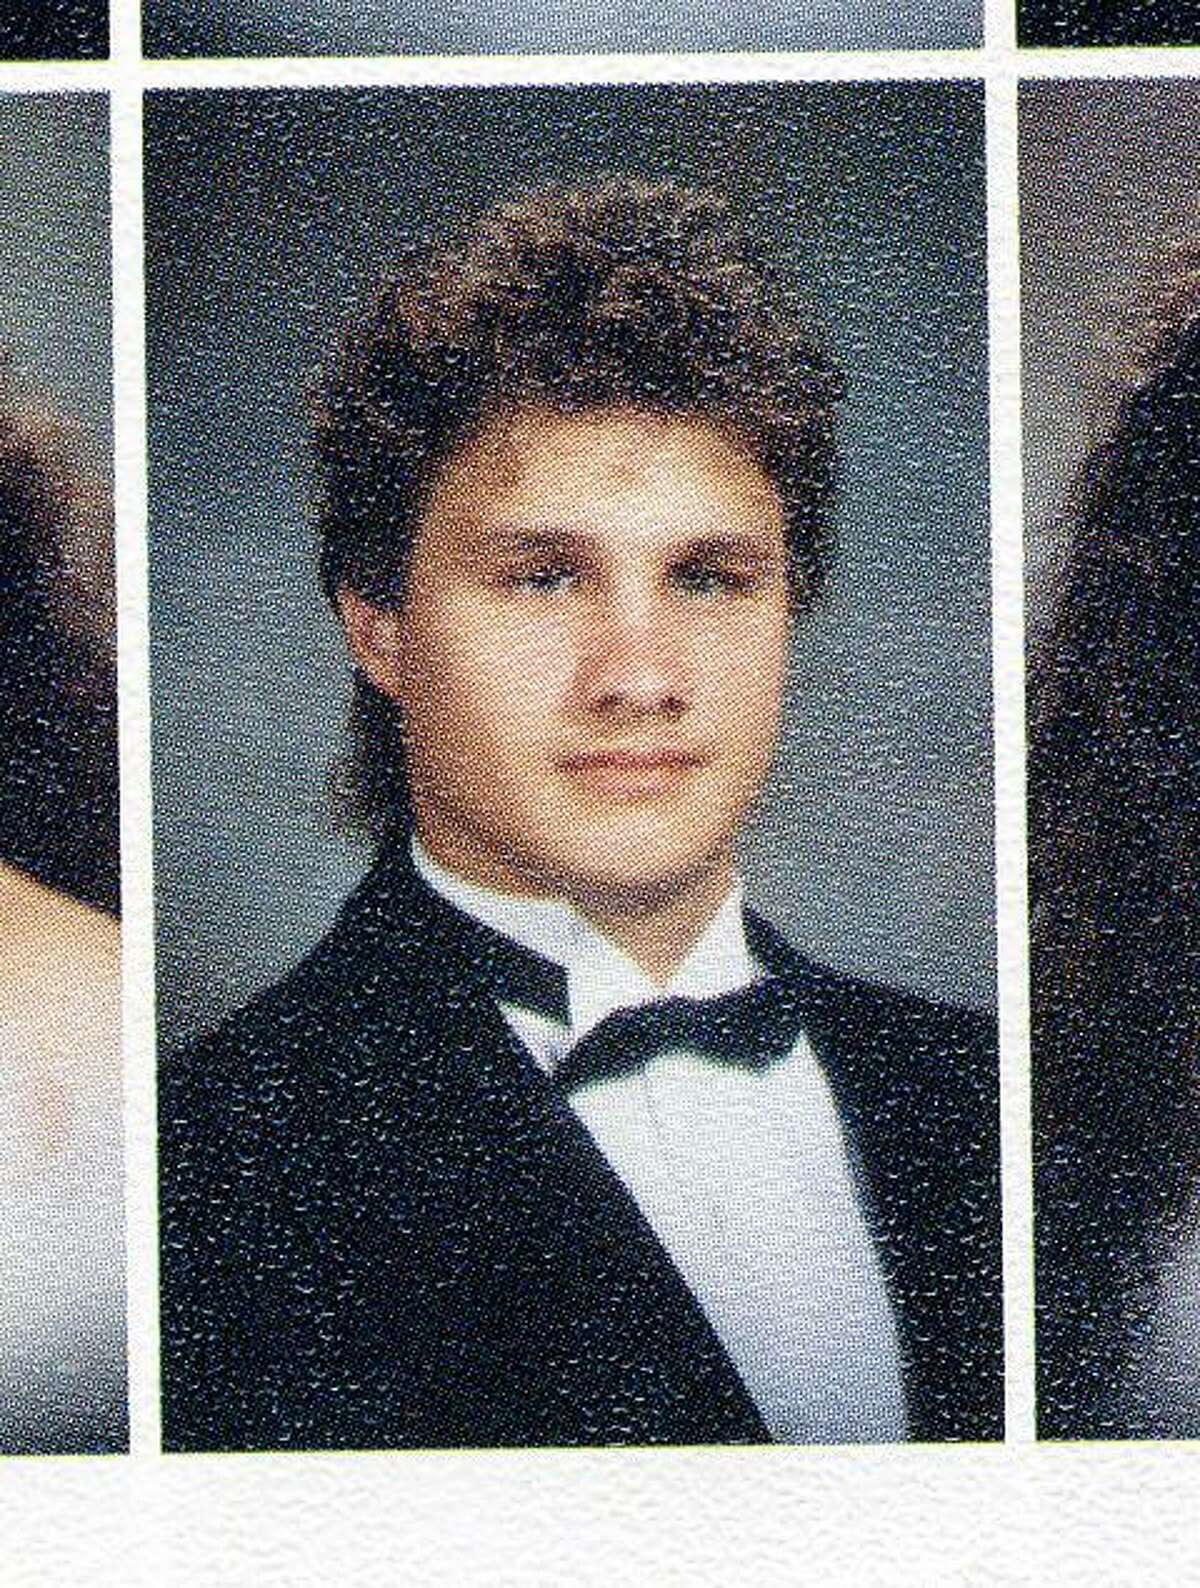 Edgar Valdez Villarreal, 44, is shown in a yearbook photo when he was a senior at United High School.